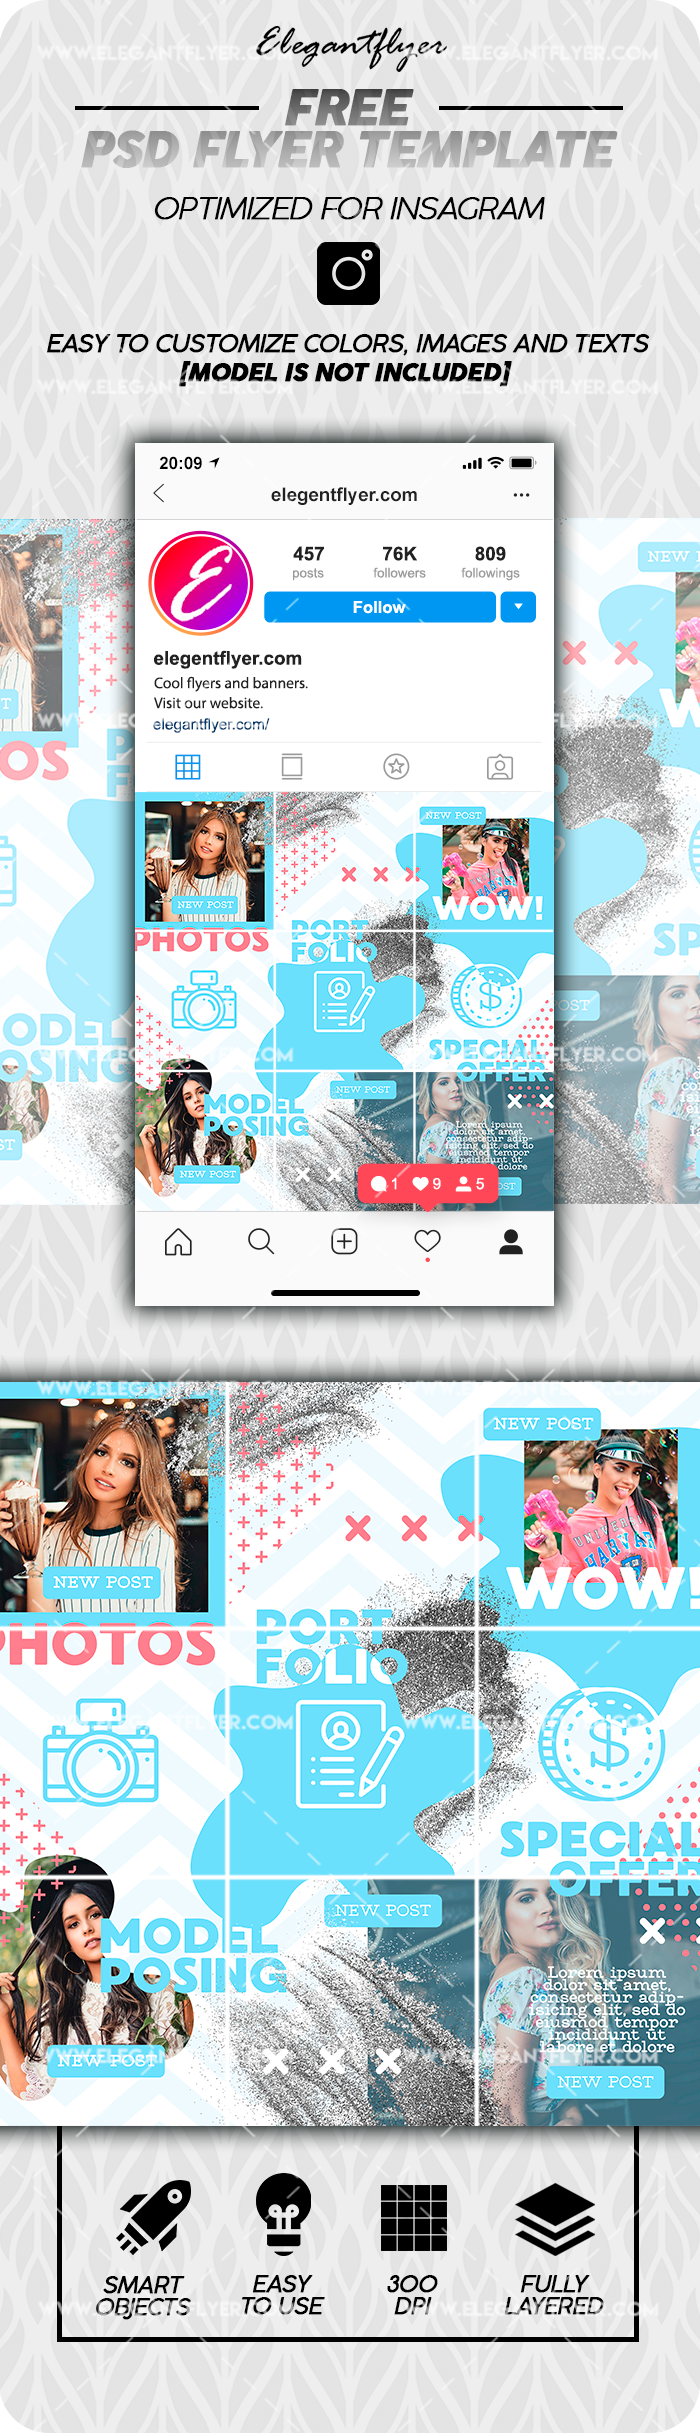 Photographer – Free Instagram PSD Puzzle